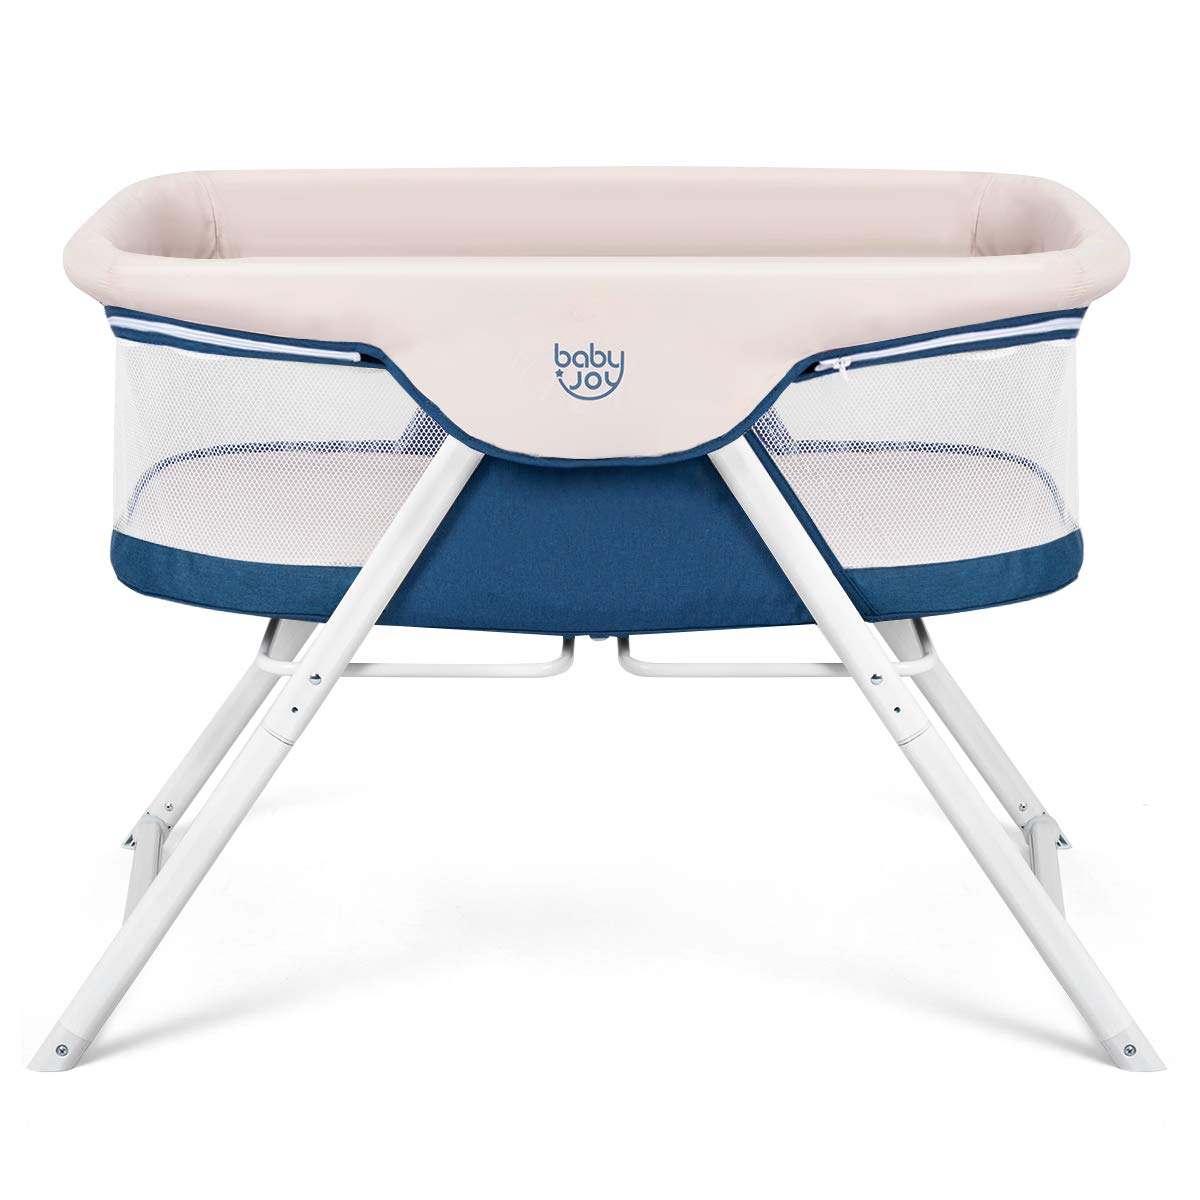 BABY JOY Rocking Bassinet, 2 in 1 Lightweight Travel Cradle w Detachable Washable Mattress, Zippered Breathable Mesh Side, Oxford Carry Bag Included, Portable Crib for Newborn Baby Beige Blue